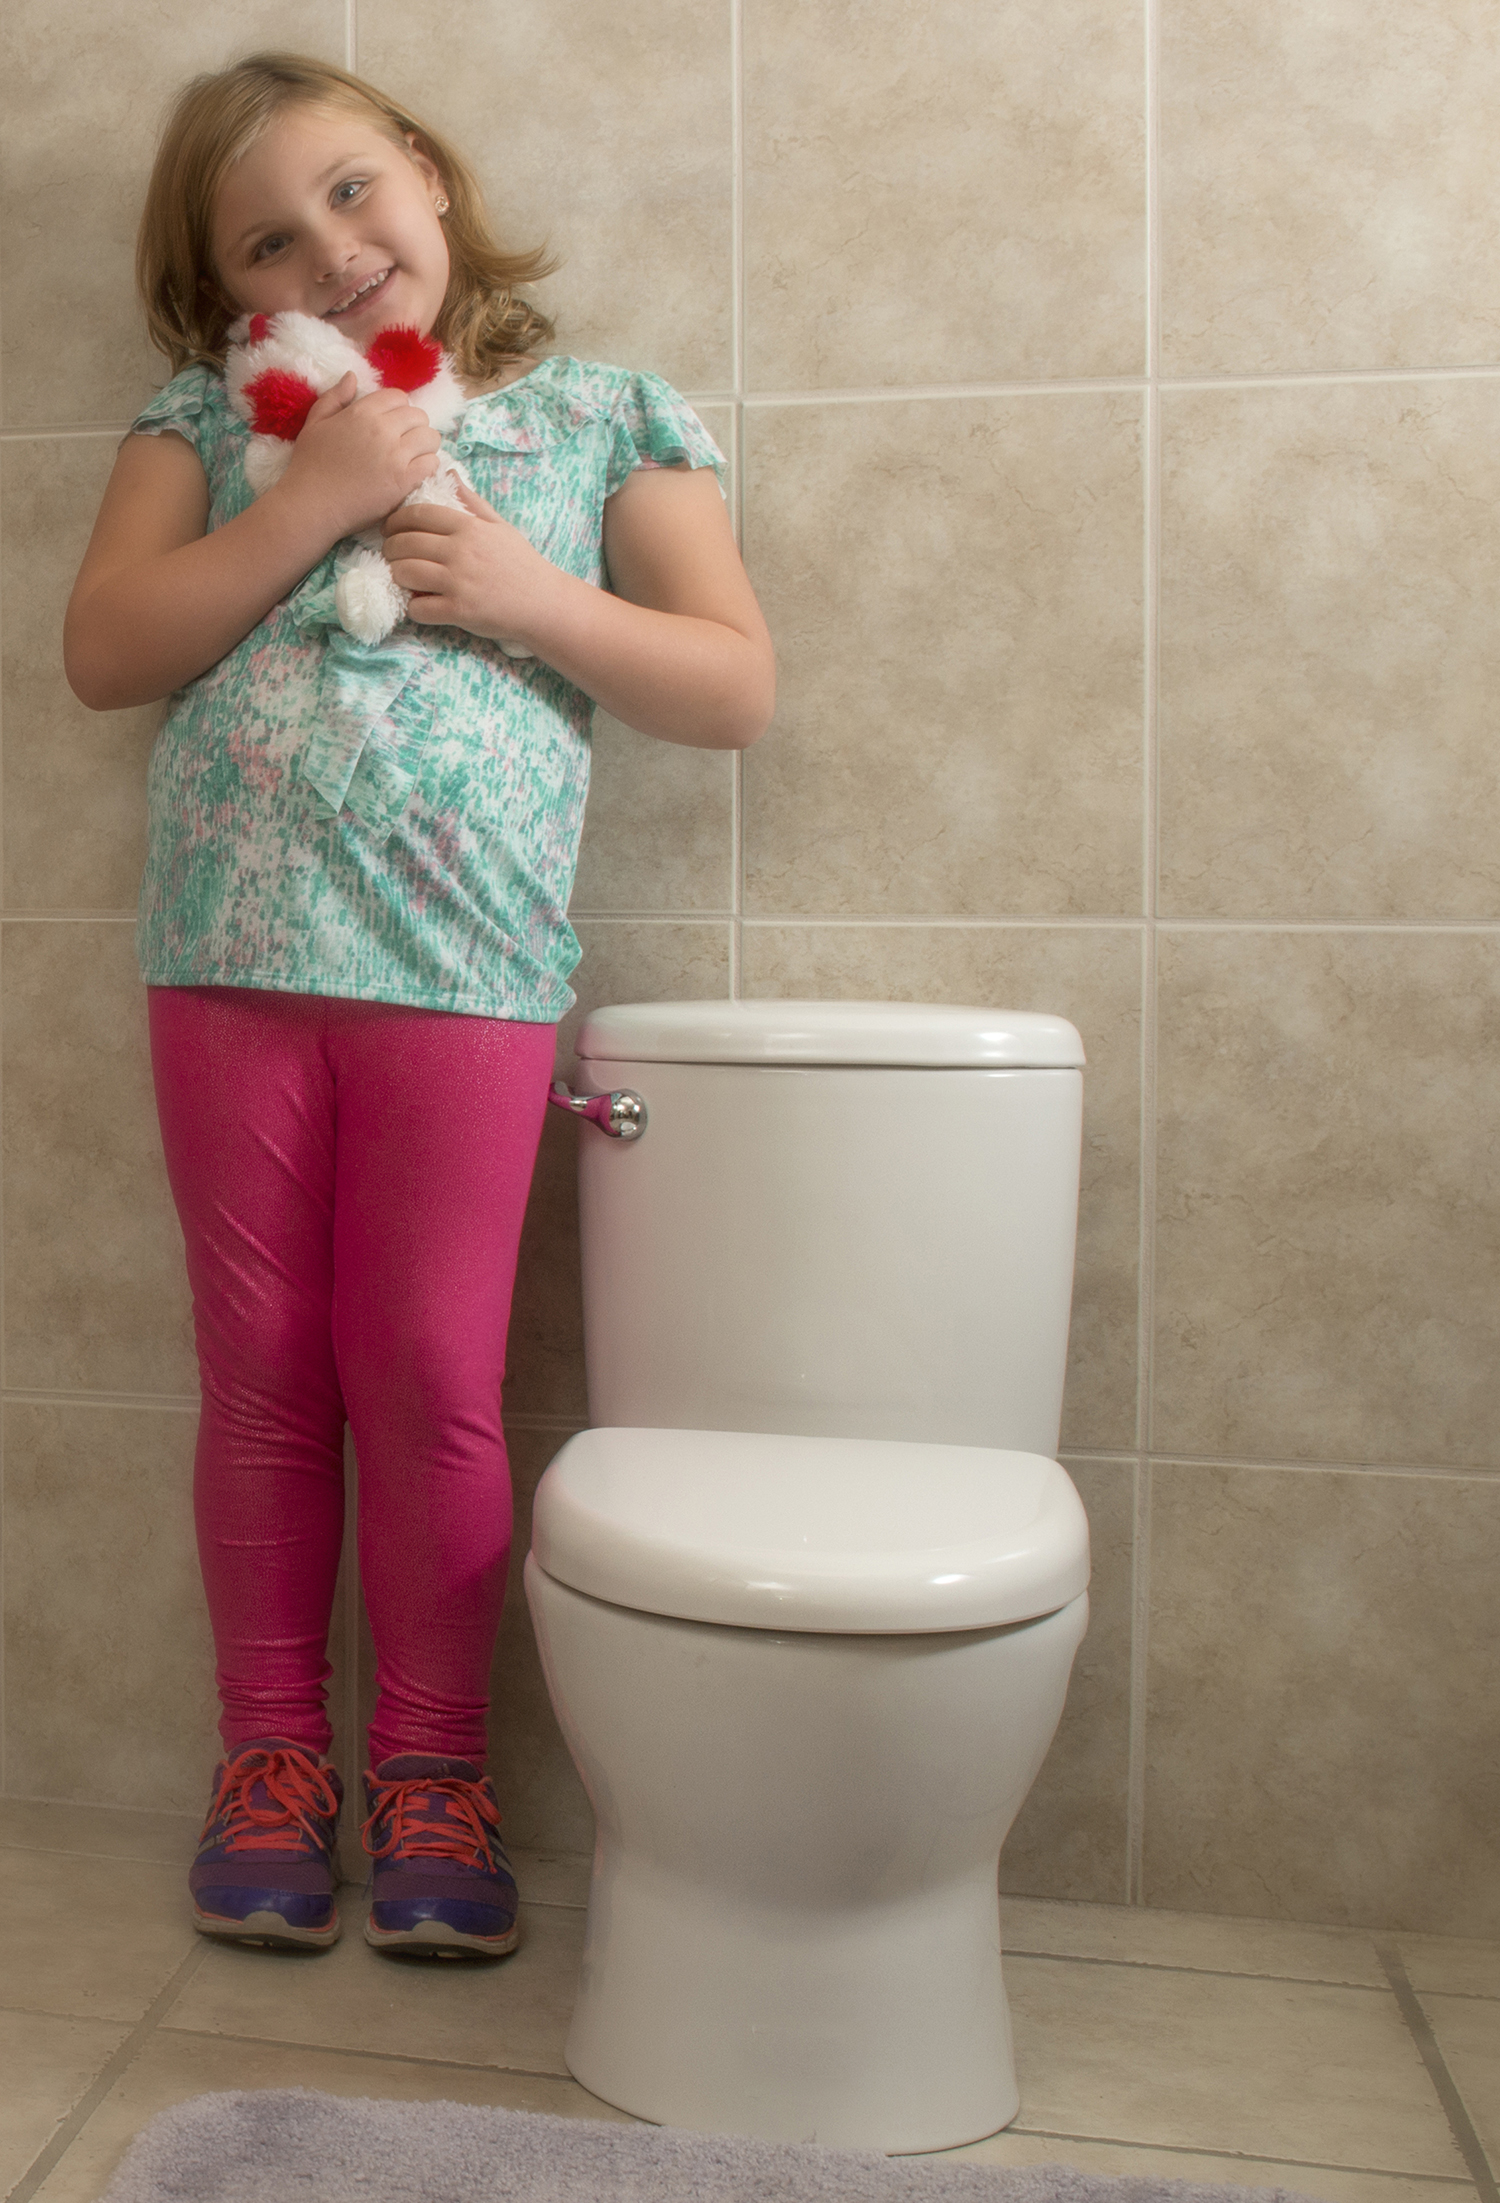 10 Kids Bathroom Ideas for Every Home - Mansfield Plumbing